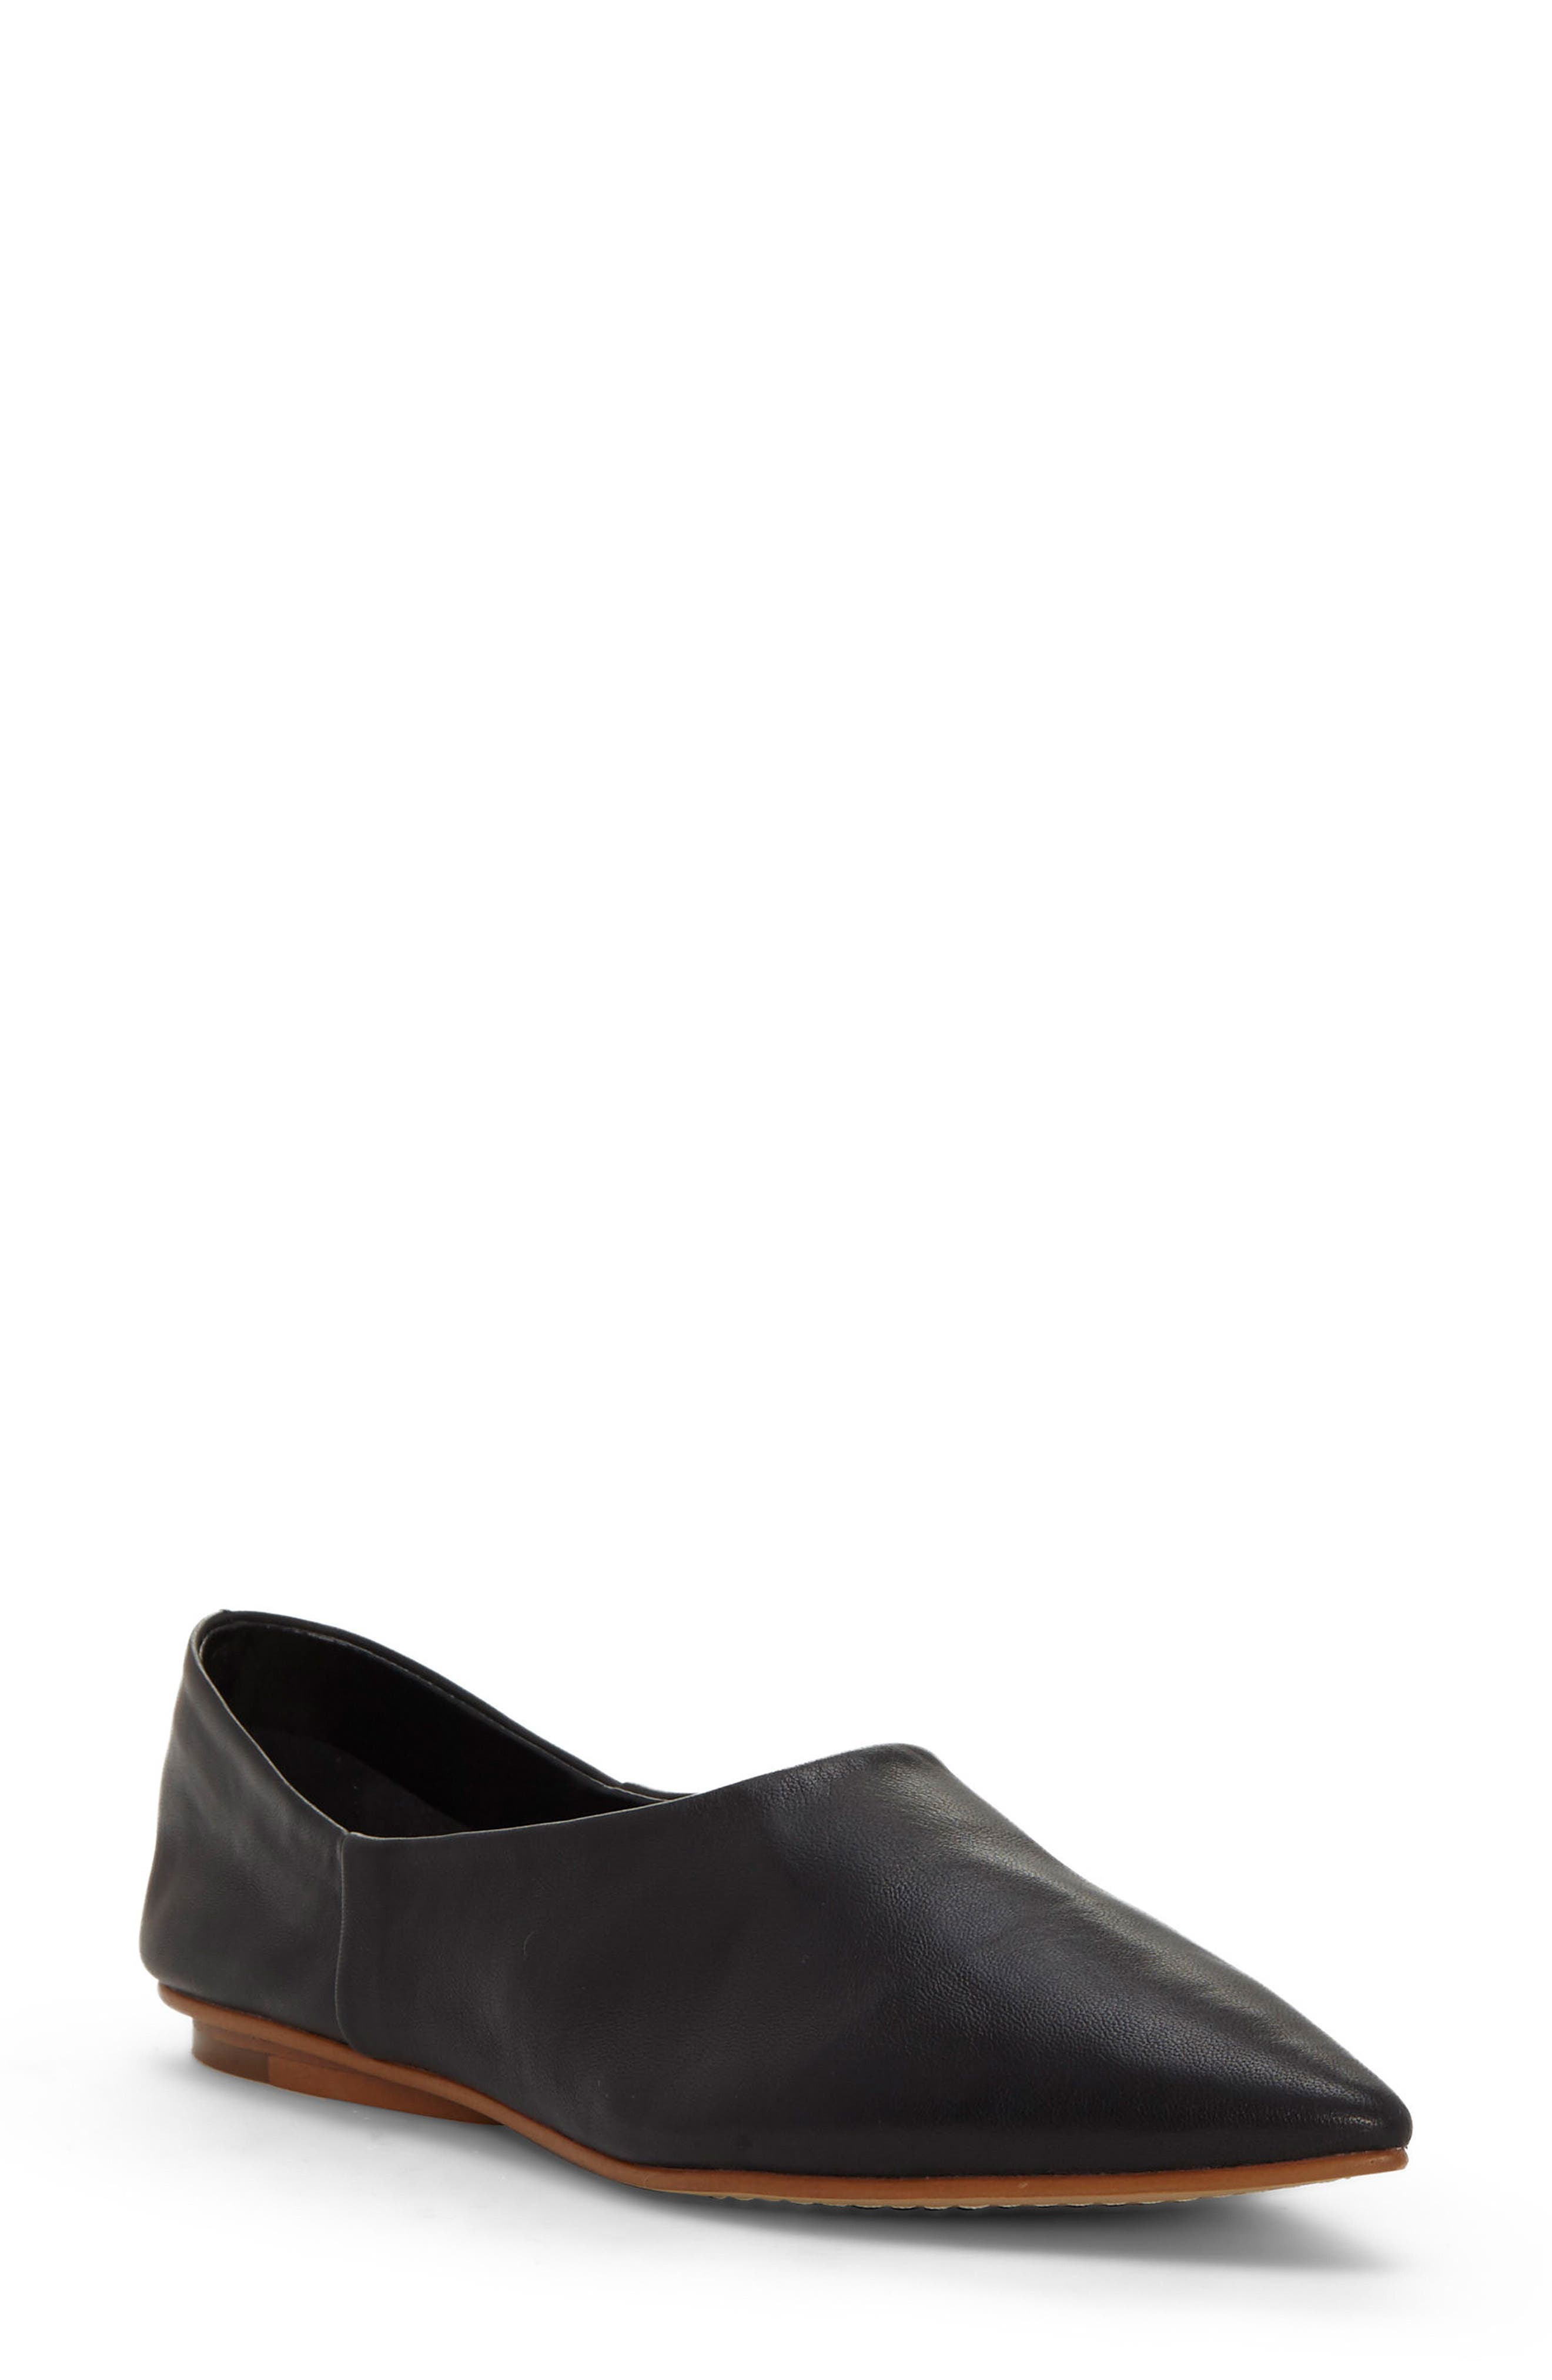 Alternate Image 1 Selected - Vince Camuto Stanta Pointy Toe Flat